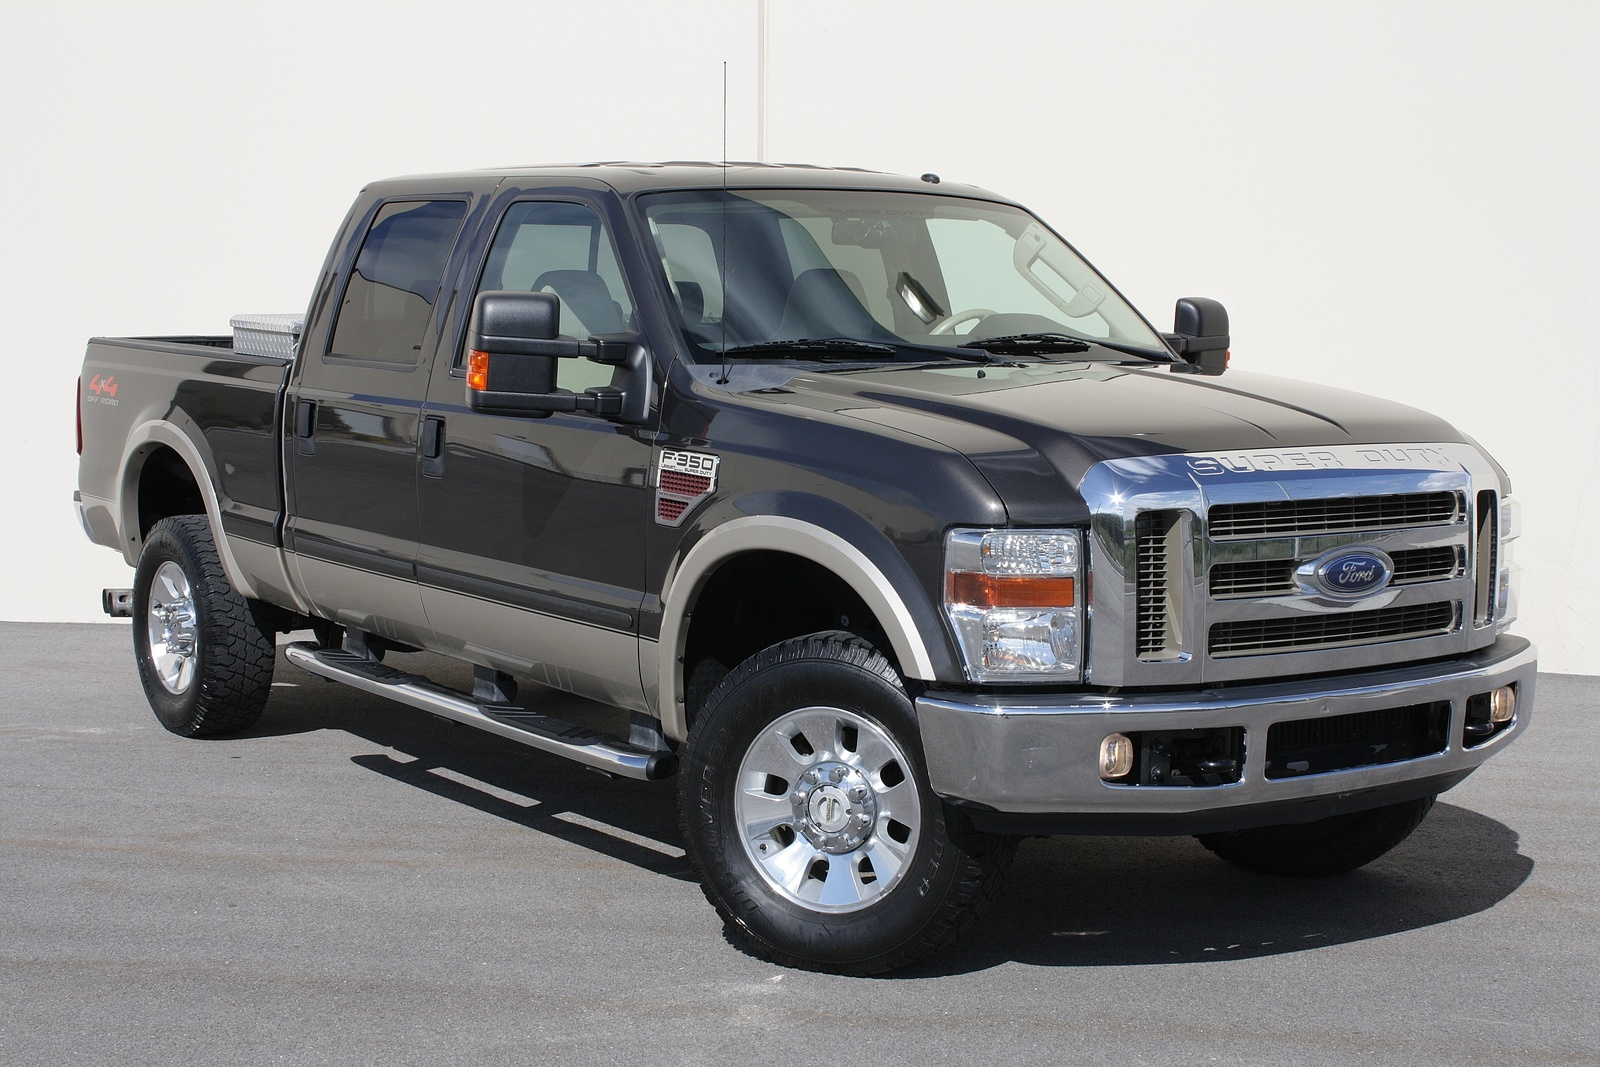 2008 Ford F-350 Super Duty - Pictures